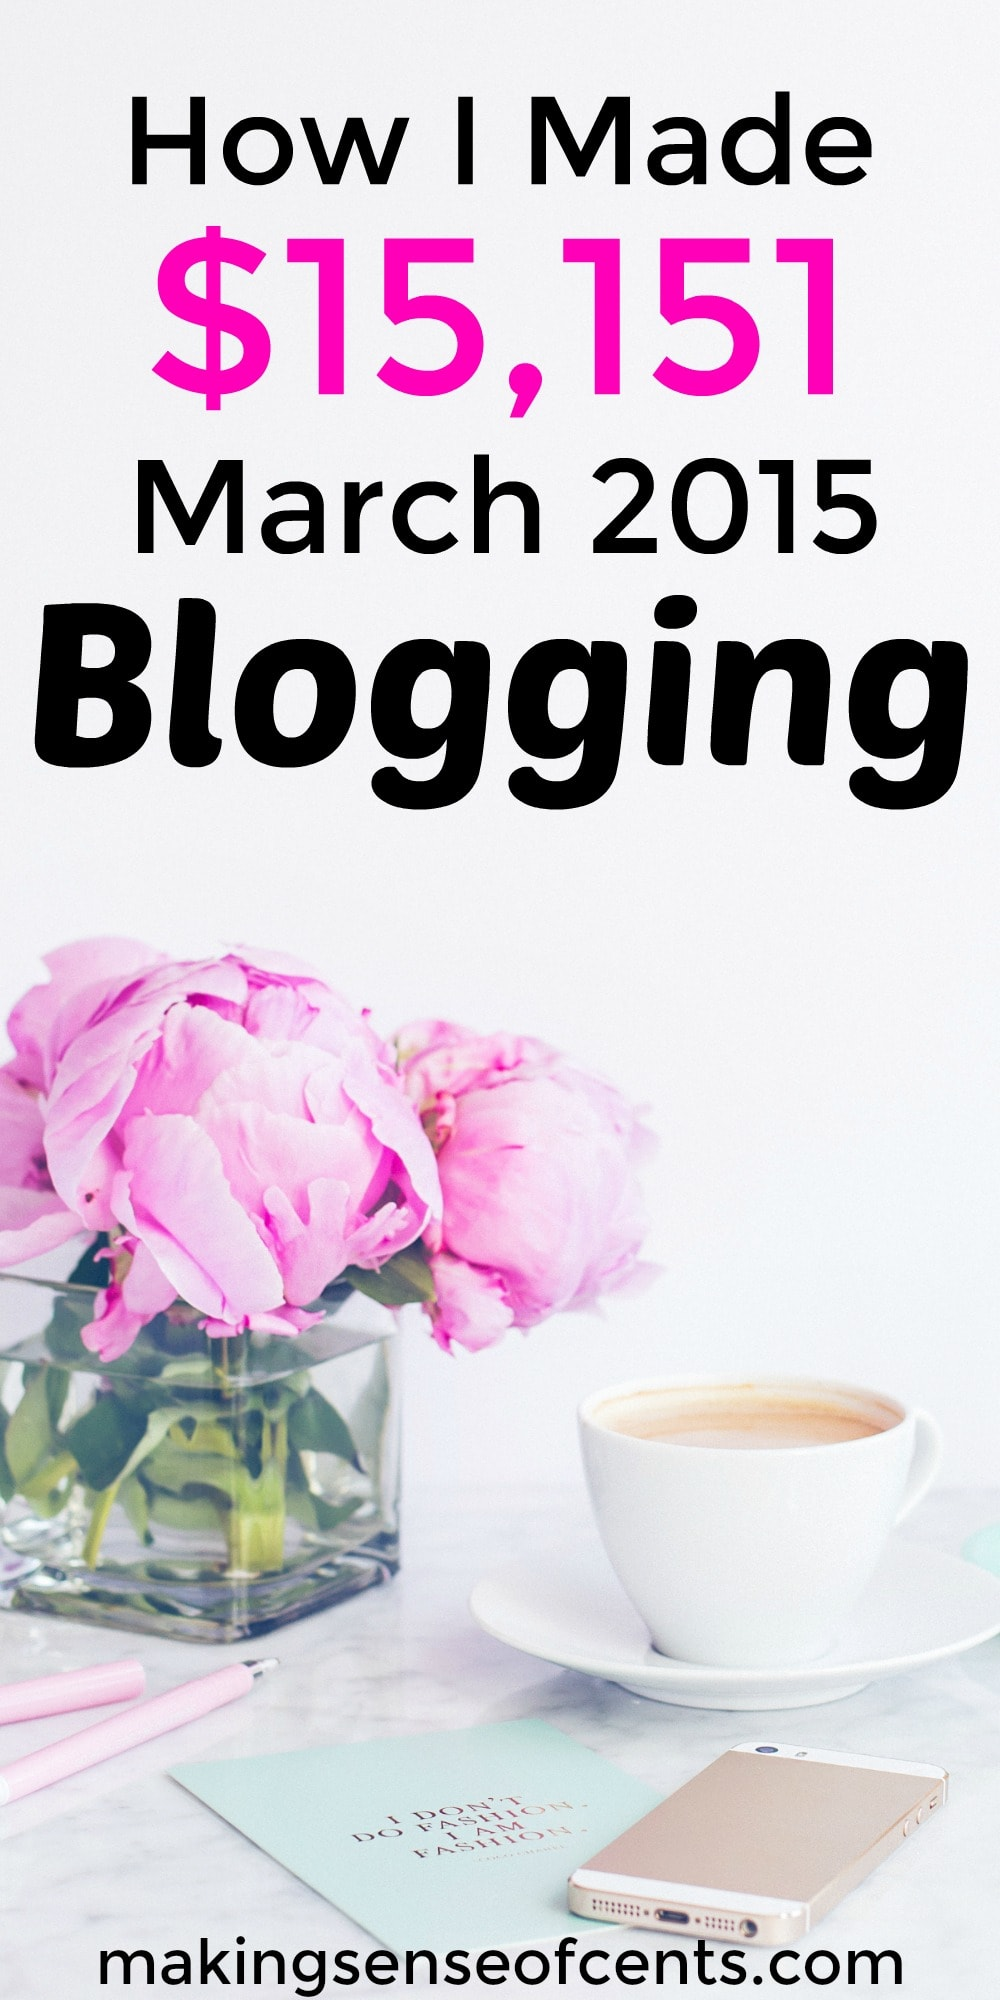 Find out how I made $15,151 blogging. This is a great list!